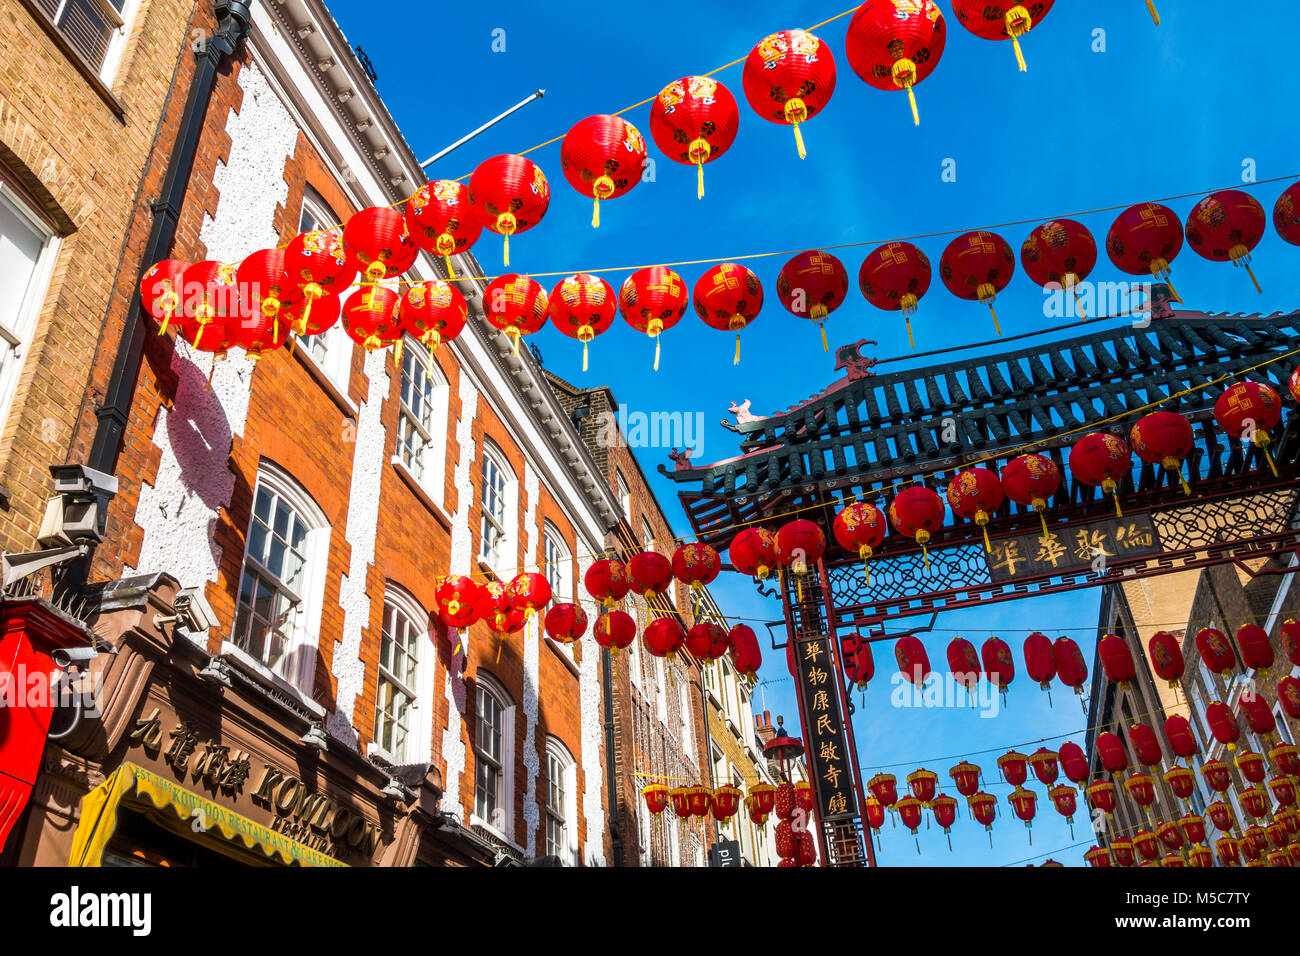 Colourful lanterns against a blue sky, adorning Gerrard Street in Chinatown to celebrate Chinese New Year. Westminster, - Stock Image